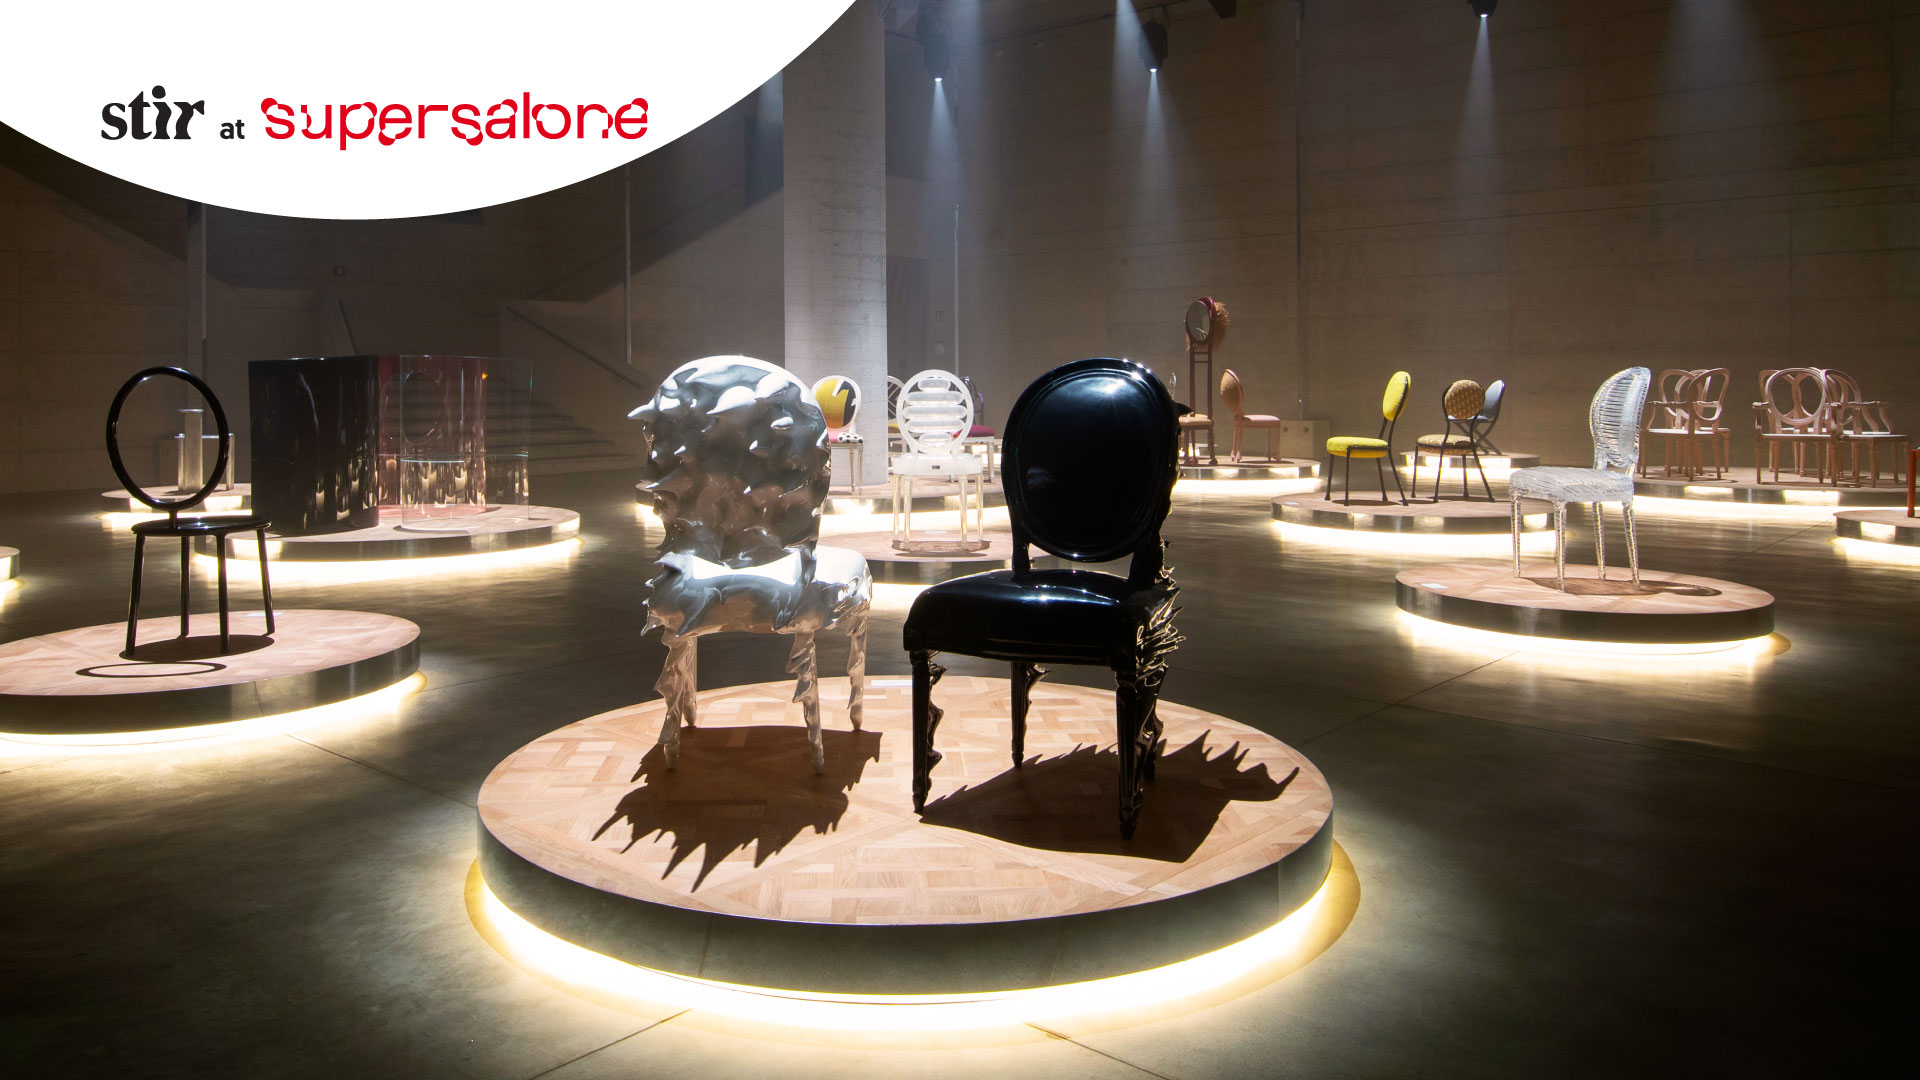 iconic dior medallion chair reimagined by artists and designers at supersalone the dior medallion chair reimagined at milan design week stirworld